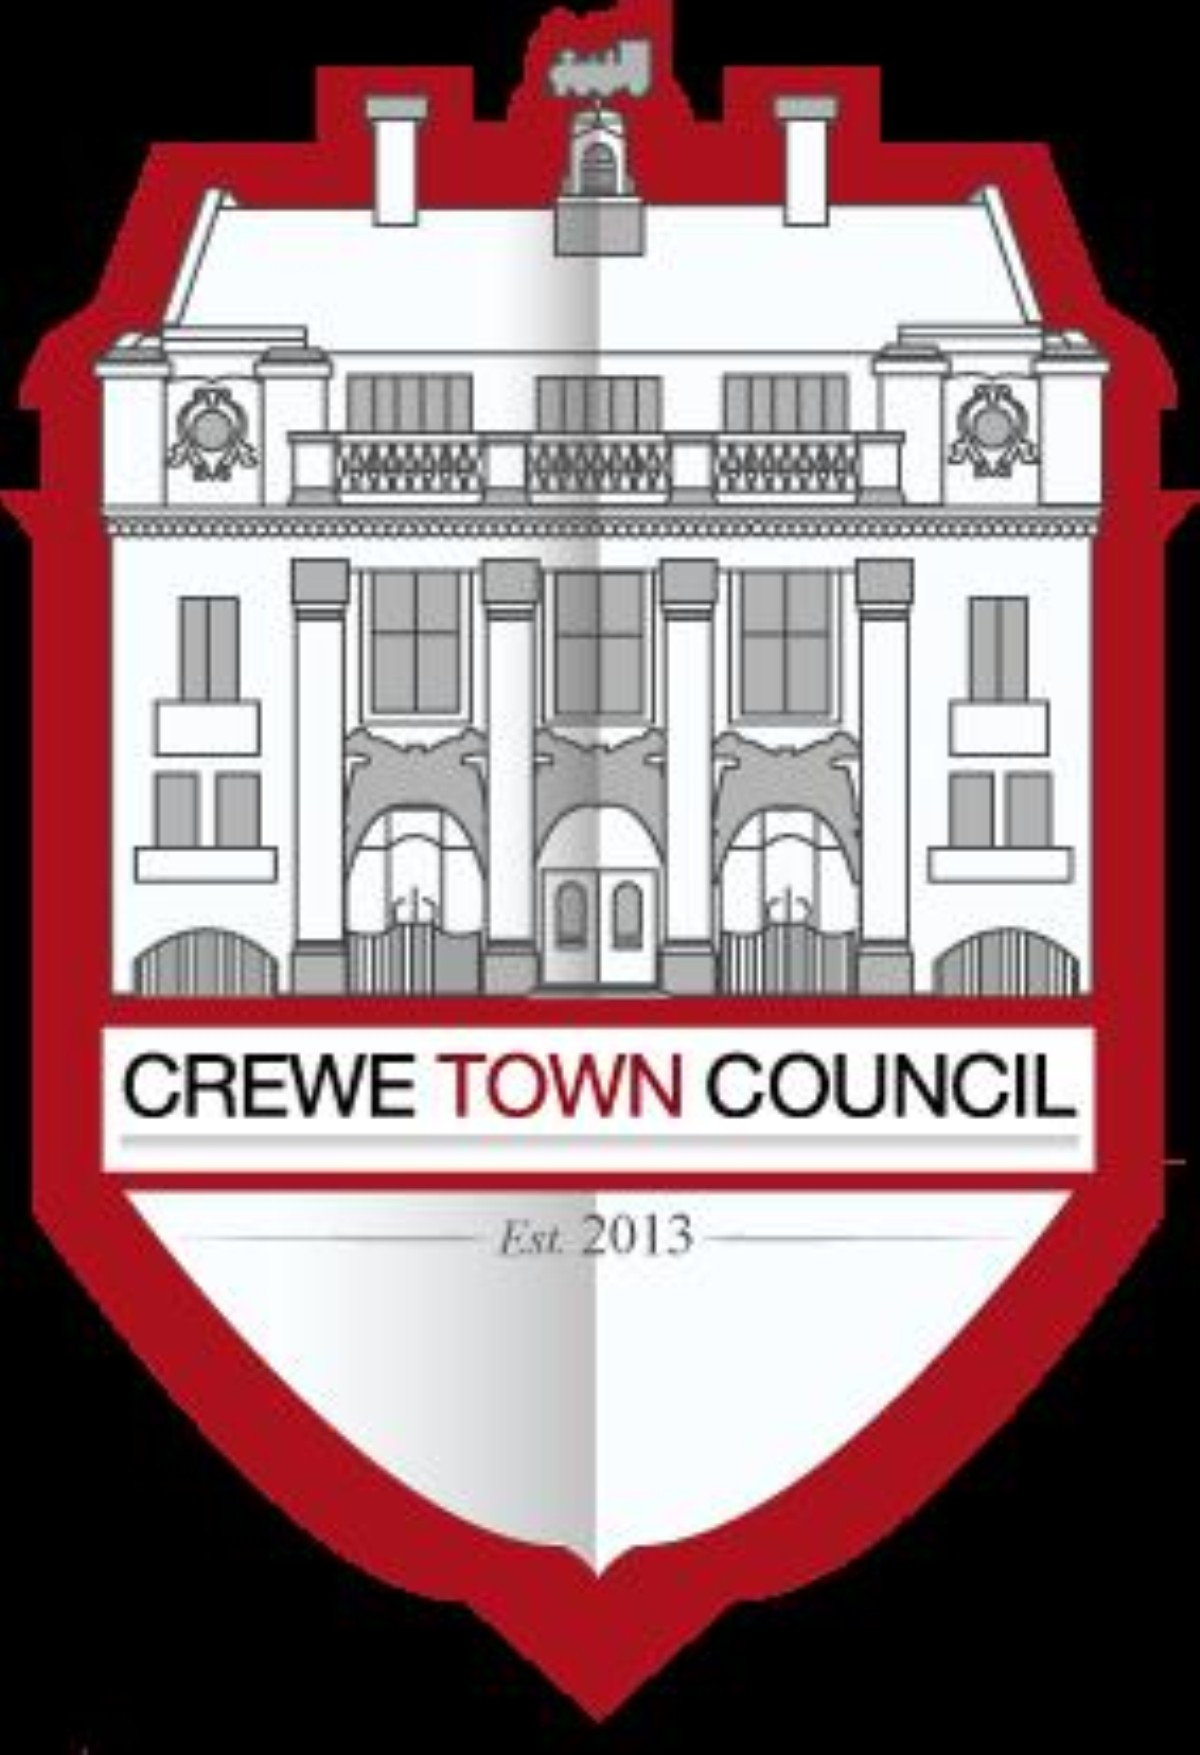 Crewe Town Council's logo foresaw a move into the Municipal Buildings, but Cheshire East